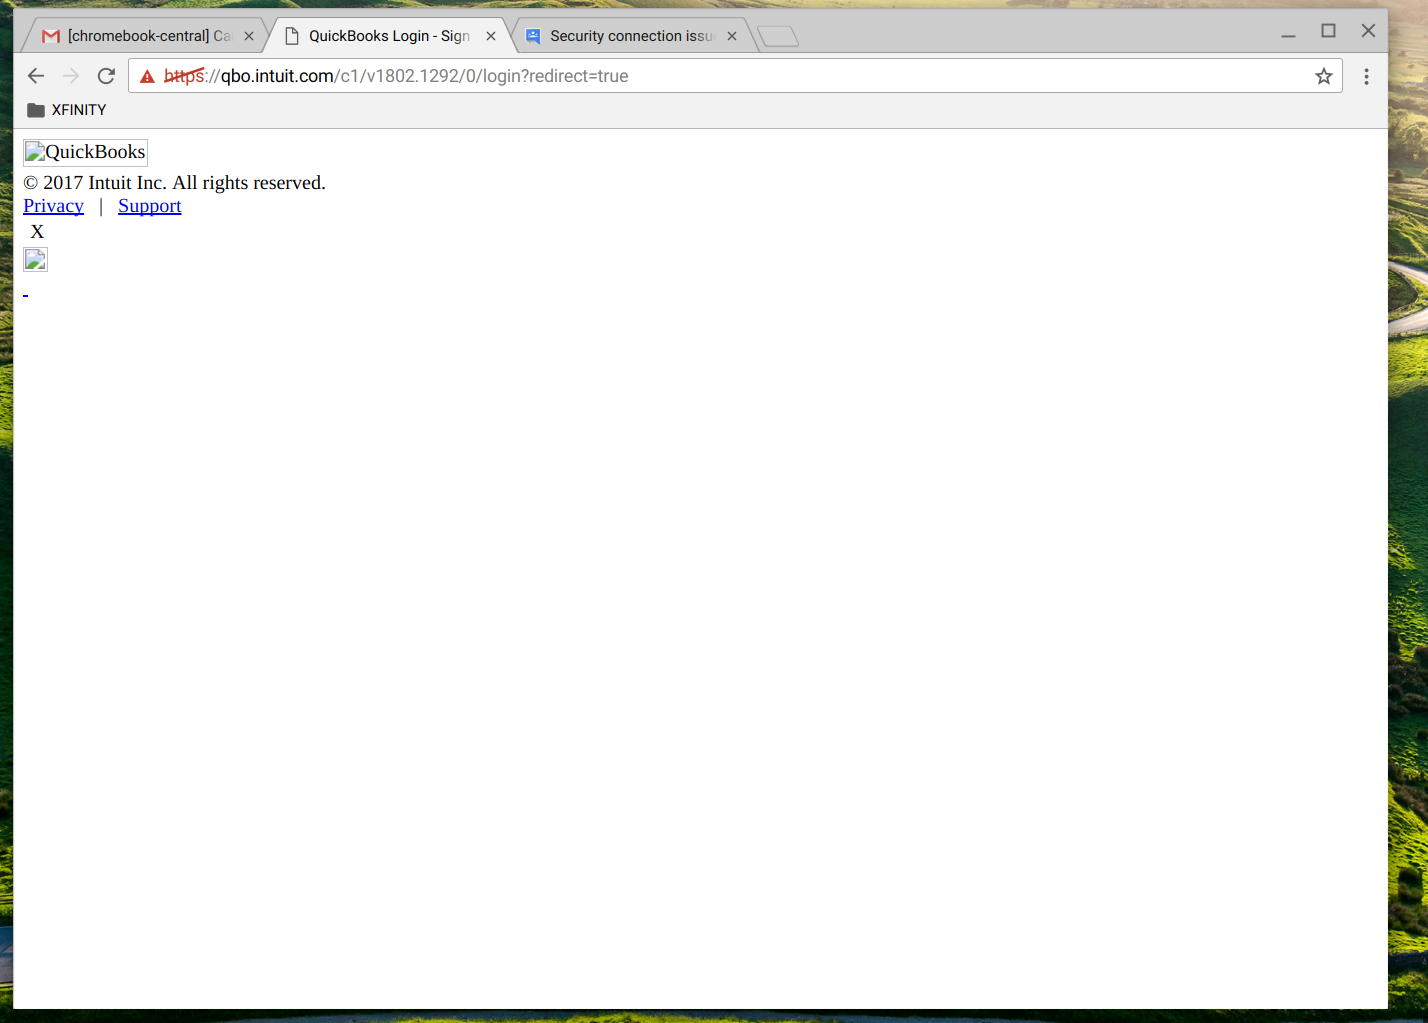 Can't log in to Quickbooks Online on Chromebook - Chromebook